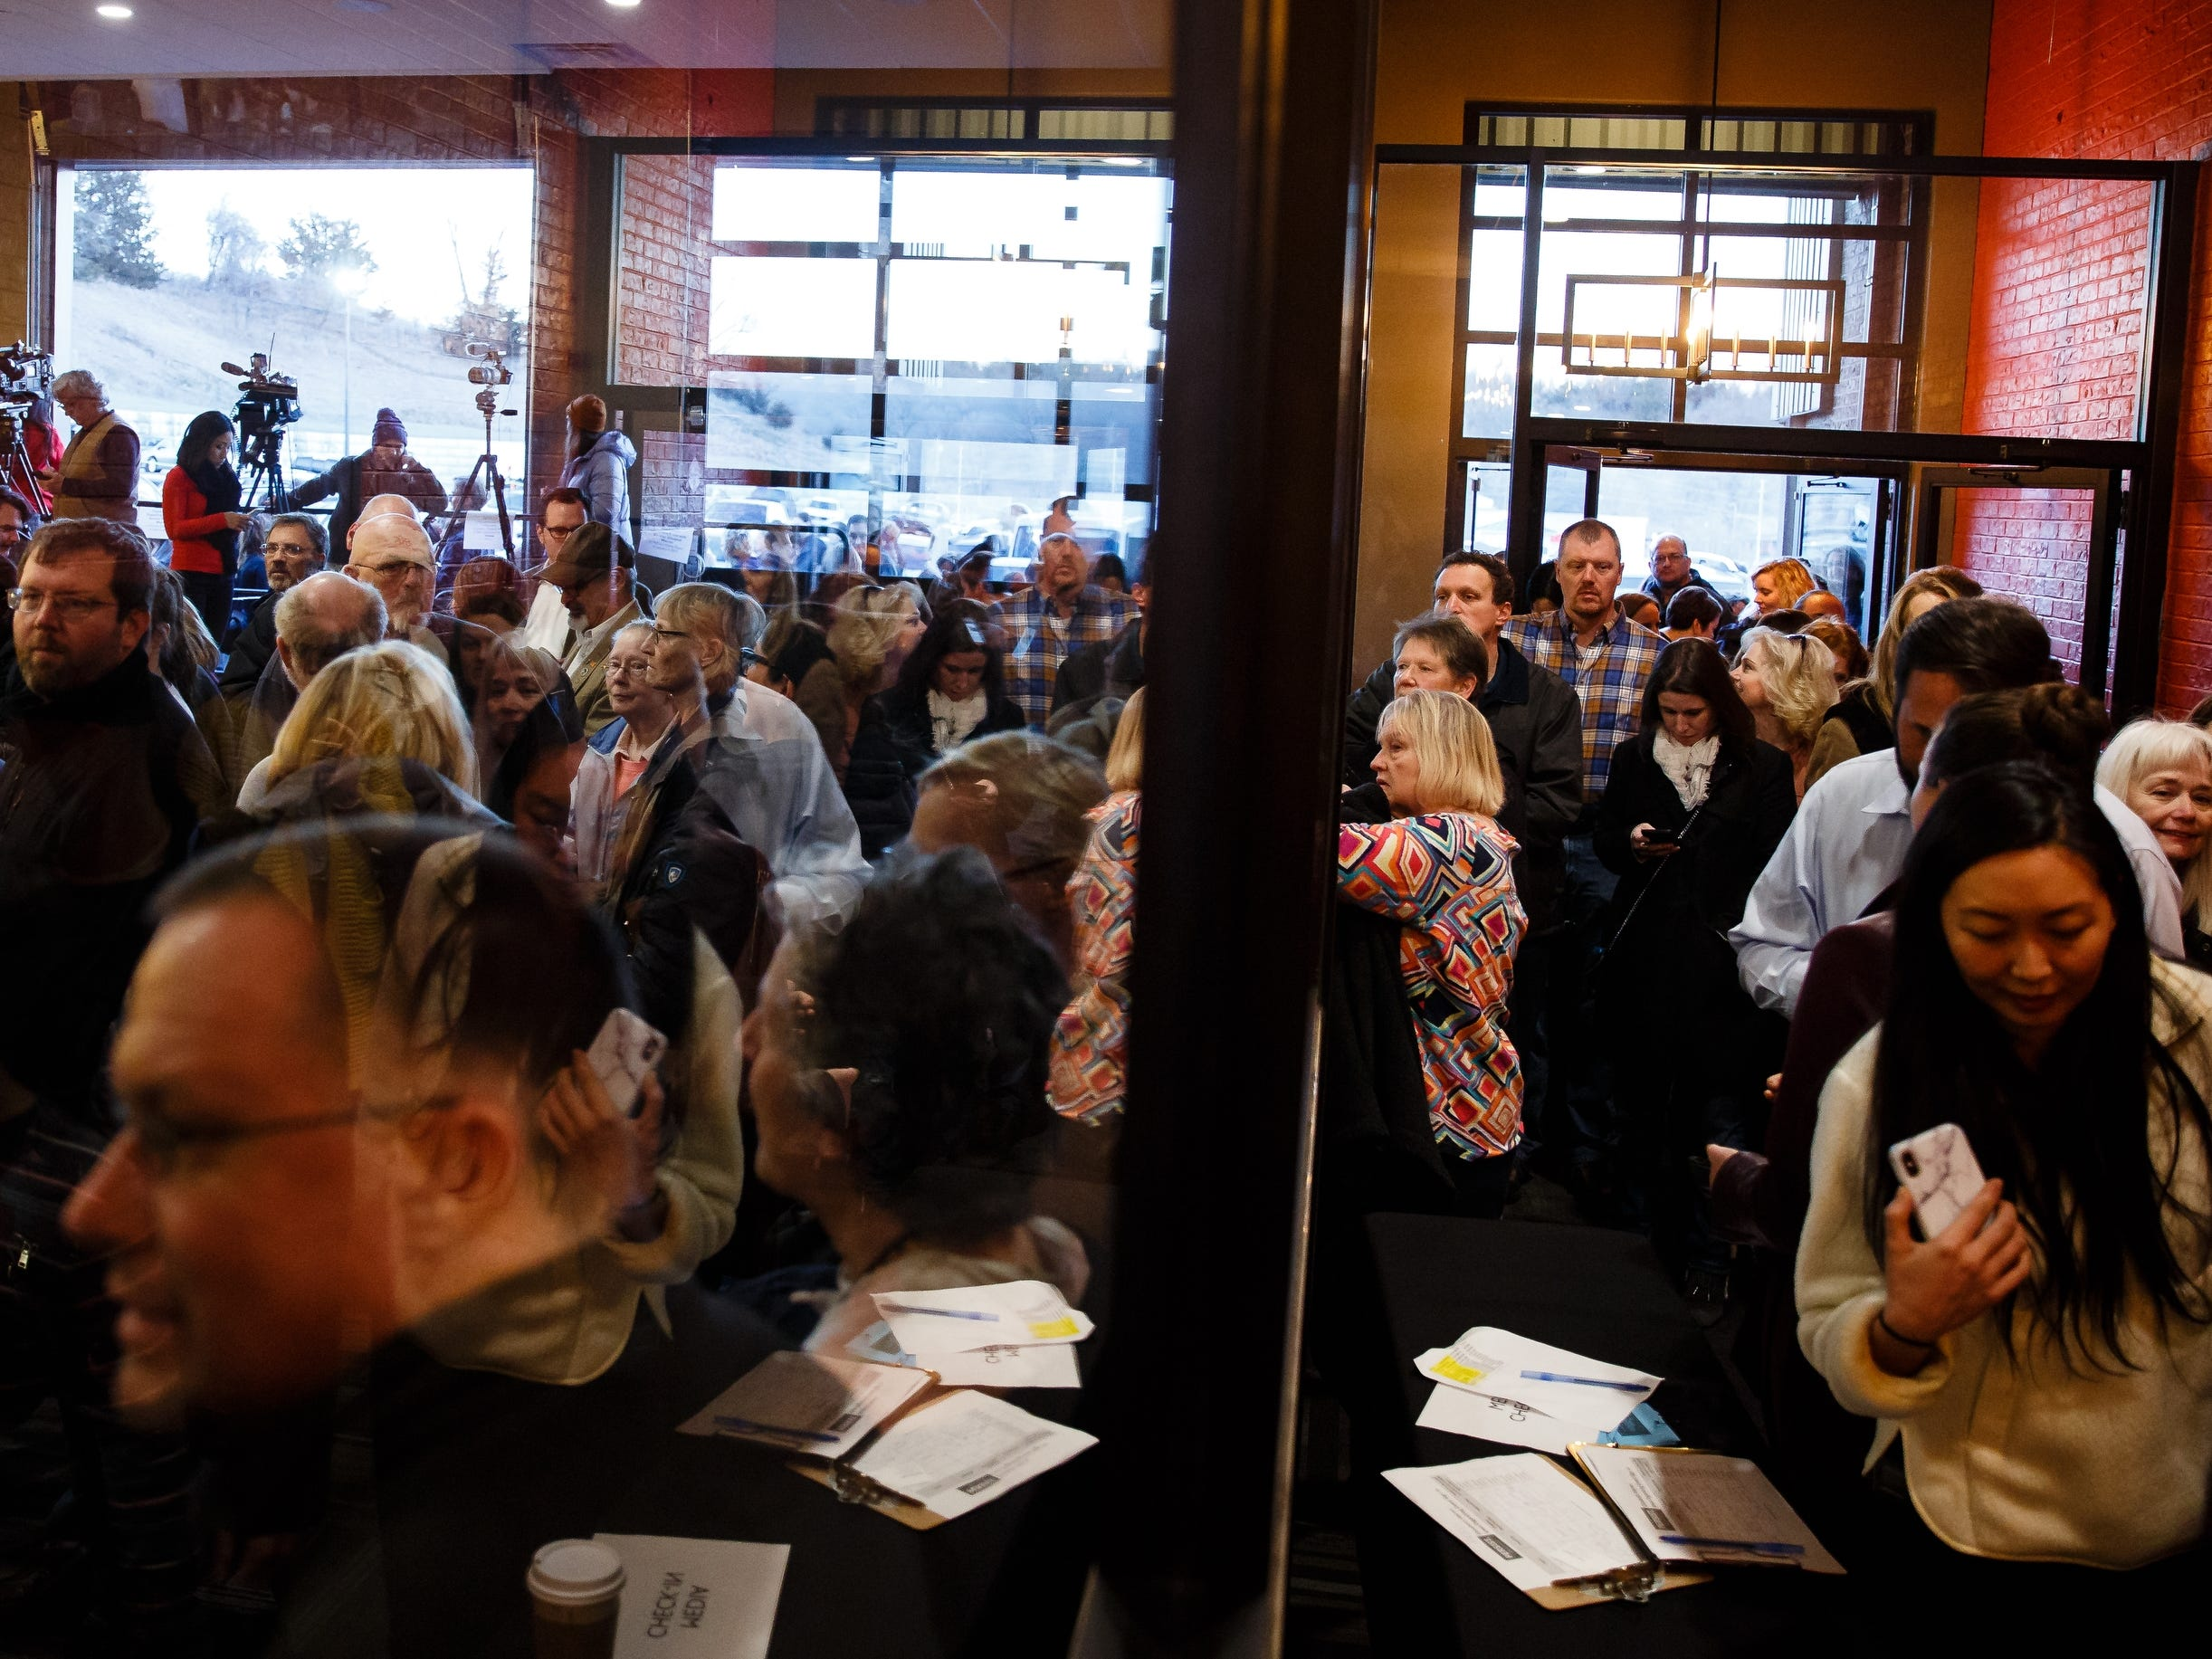 Spectators crowd the room before Sen. Elizabeth Warren speaks during an event on her first trip through Iowa as a possible 2020 presidential candidate on Friday, Jan. 4, 2019, in Council Bluffs.